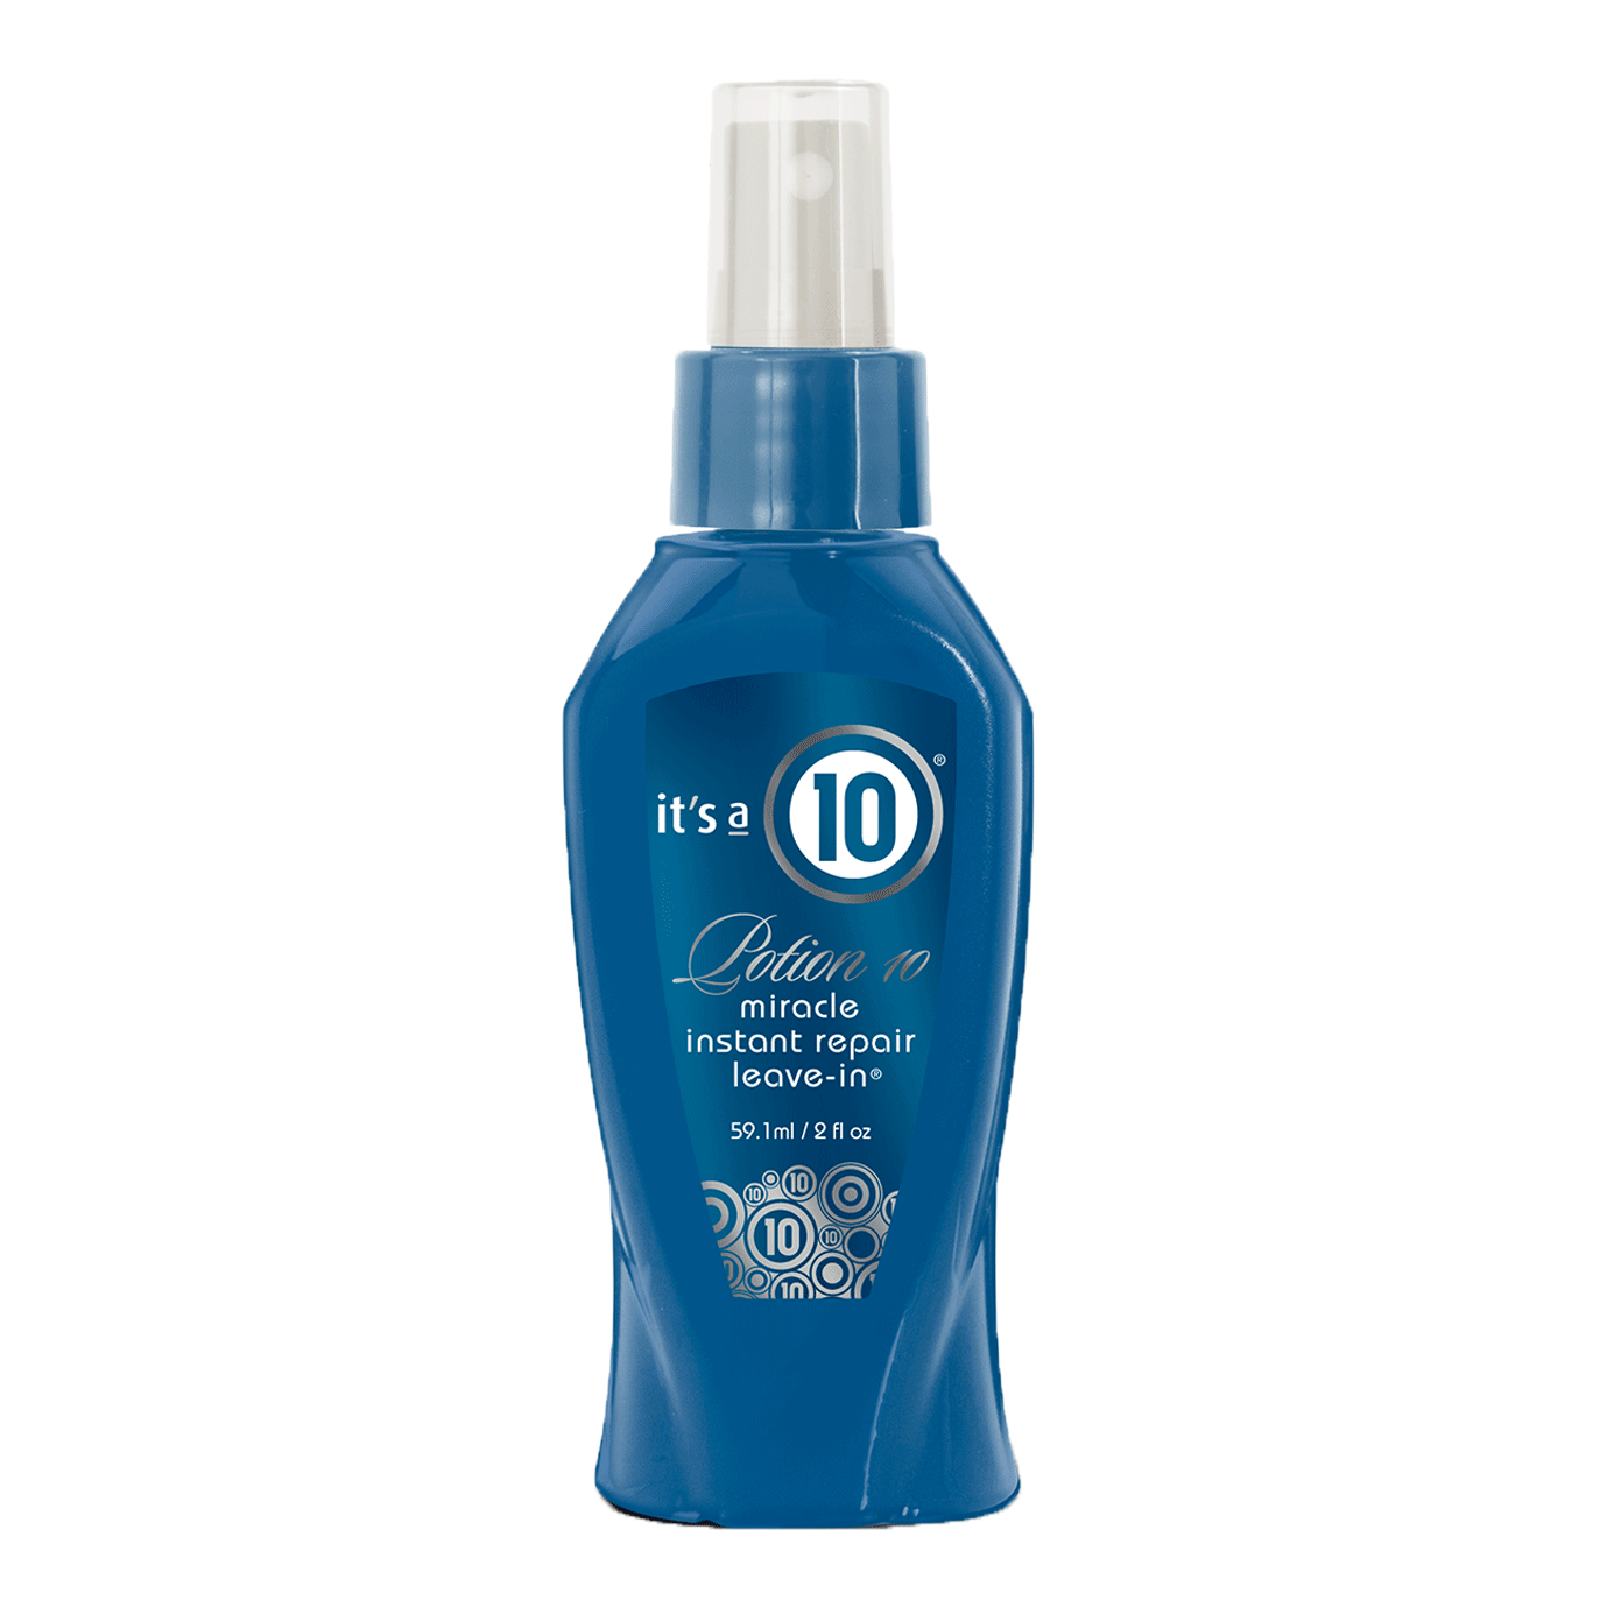 Potion 10 Miracle Instant Repair Leave-In